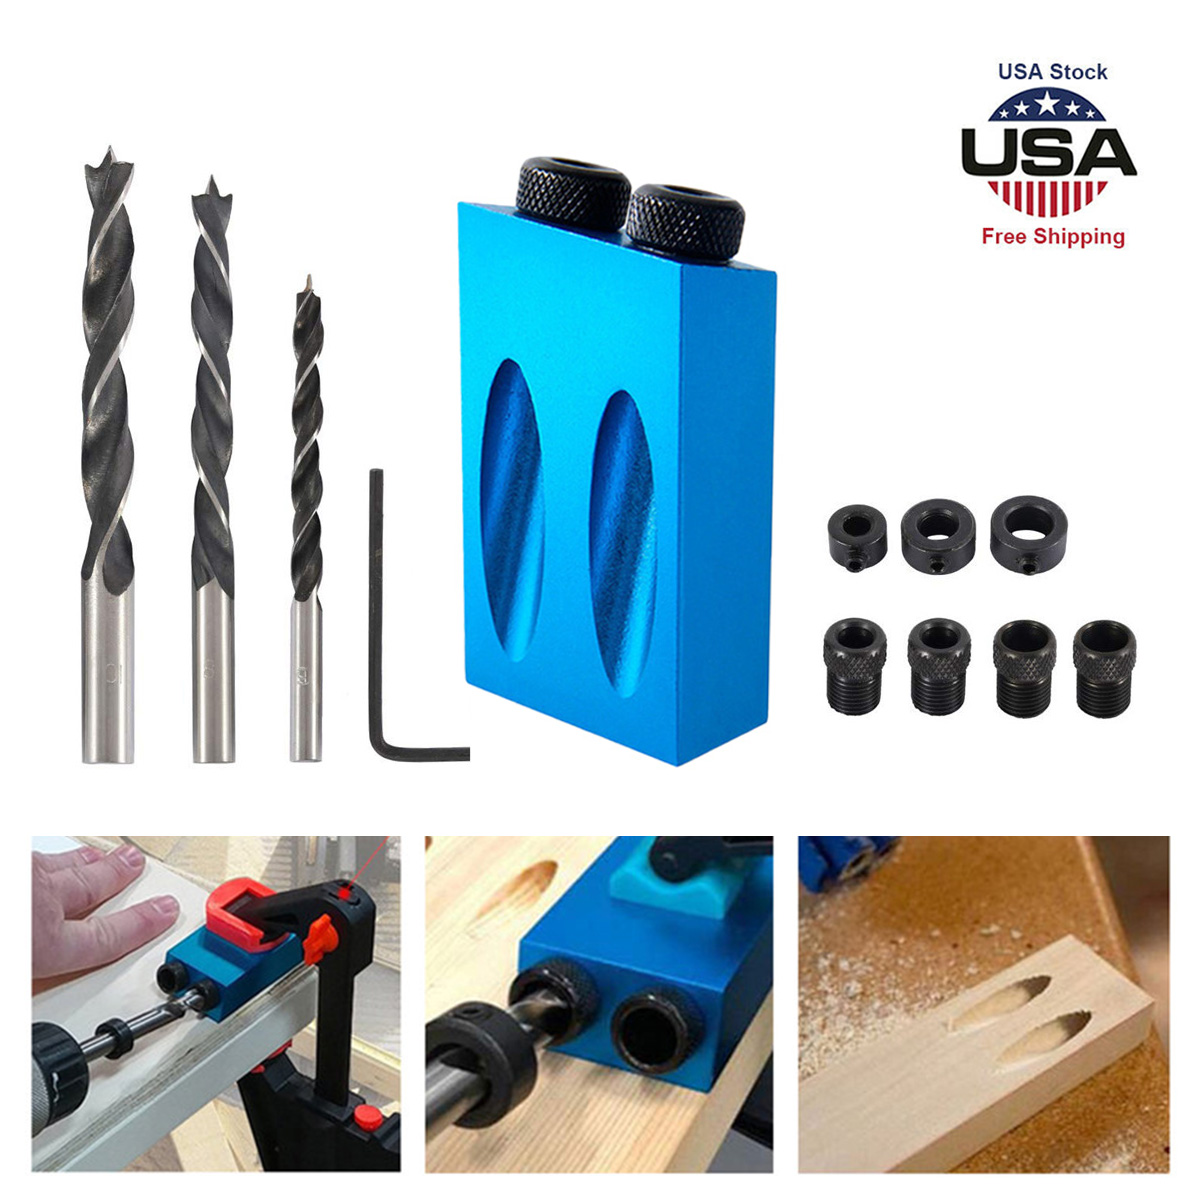 Pocket Hole Screw Jig With Dowel Drill Set Carpenters Wood Joint Tools Craft DIY